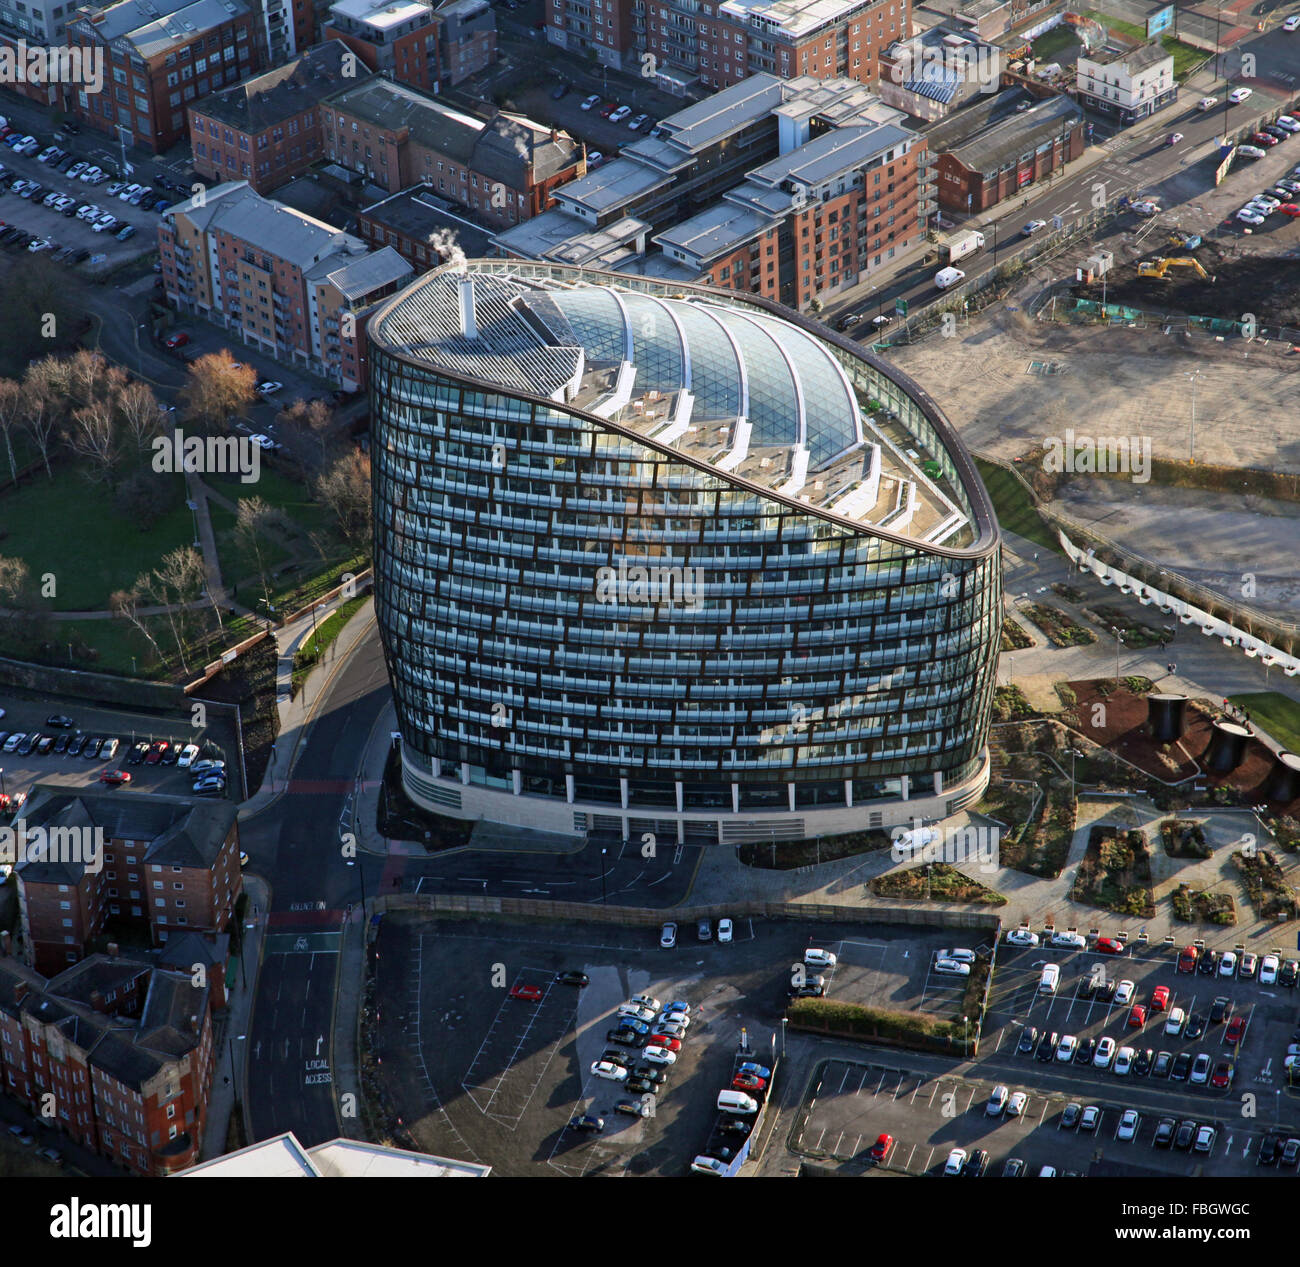 aerial view of One Angel Square, Manchester, UK - Stock Image